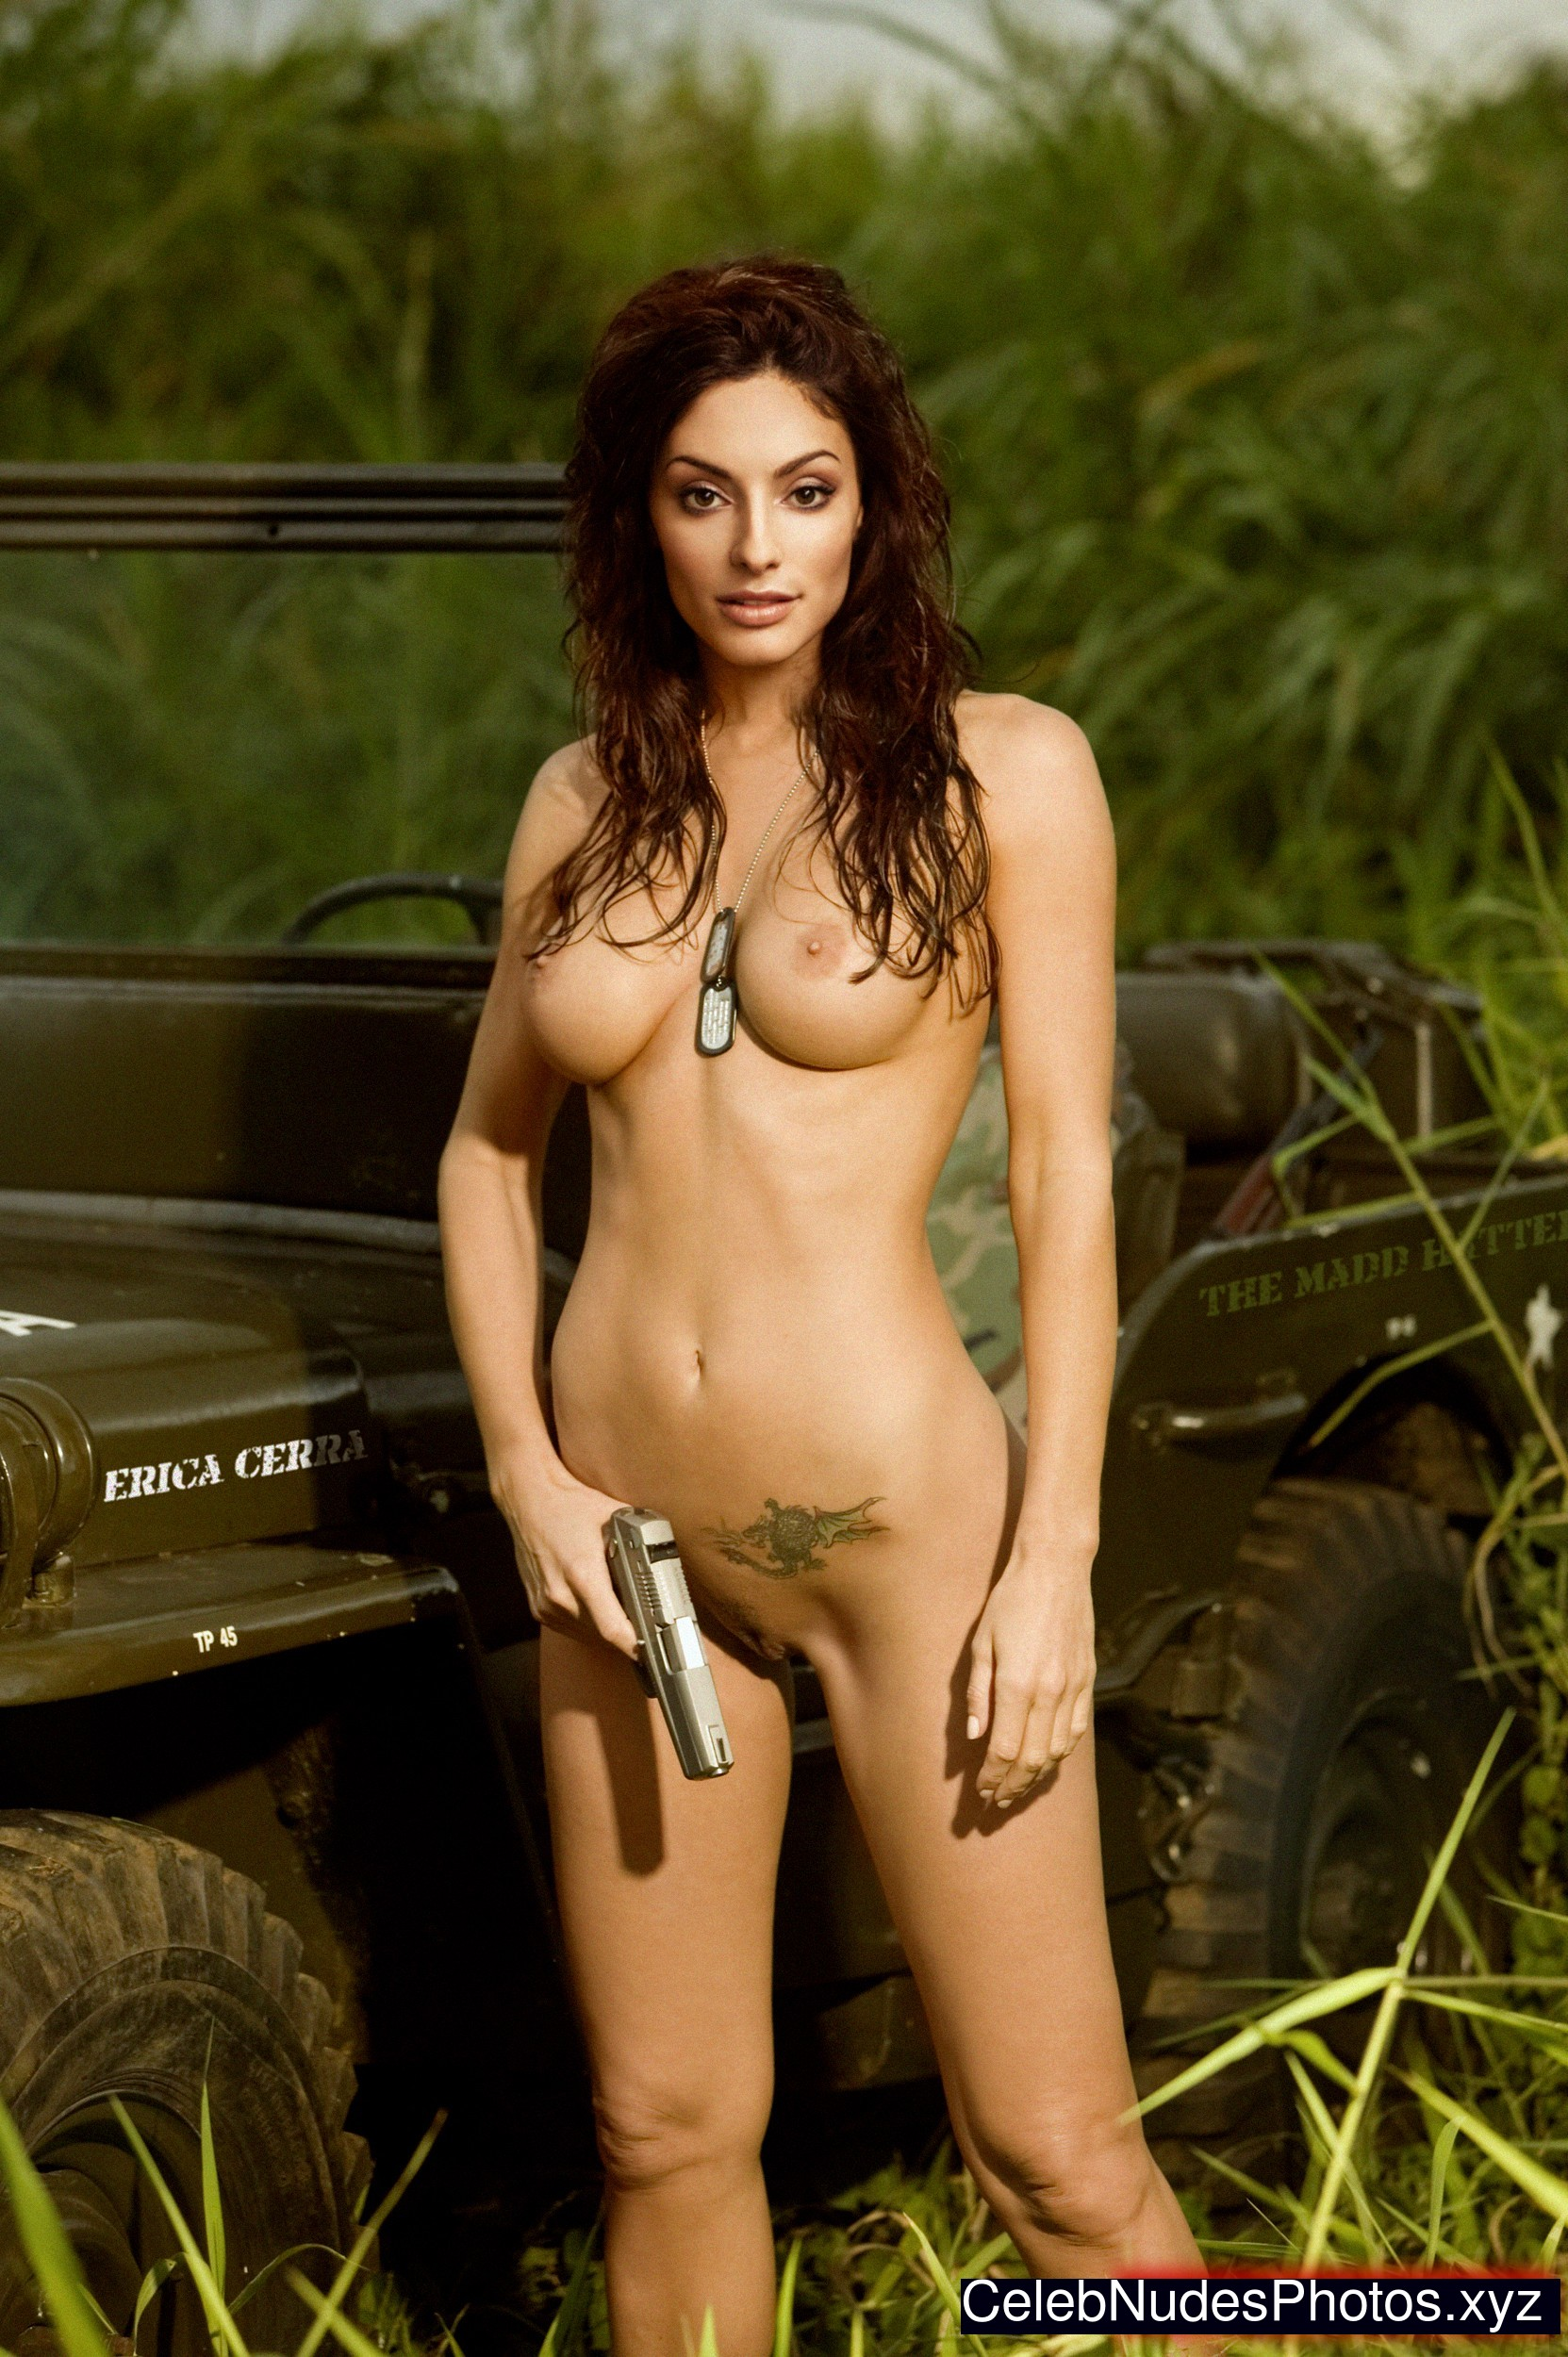 Erica Cerra naked celebrities